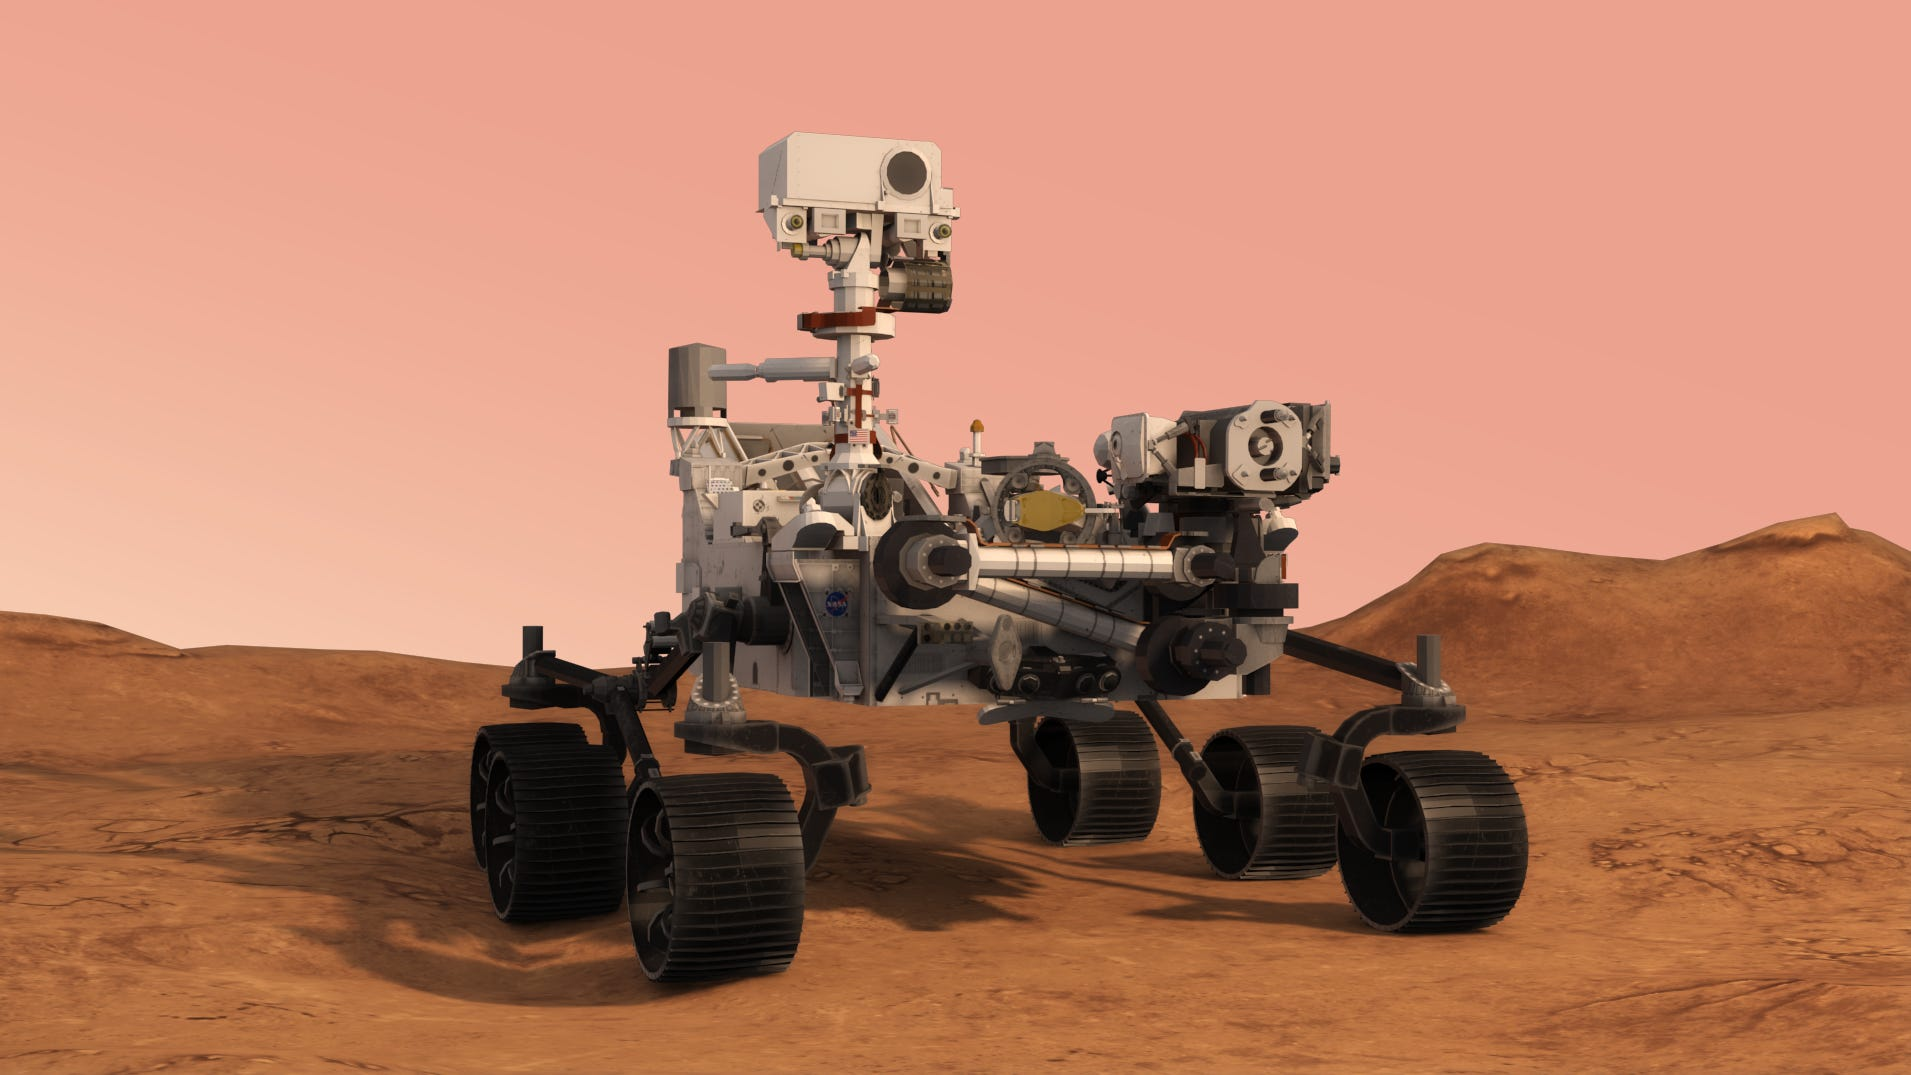 Nasa Rover sends back awesome images